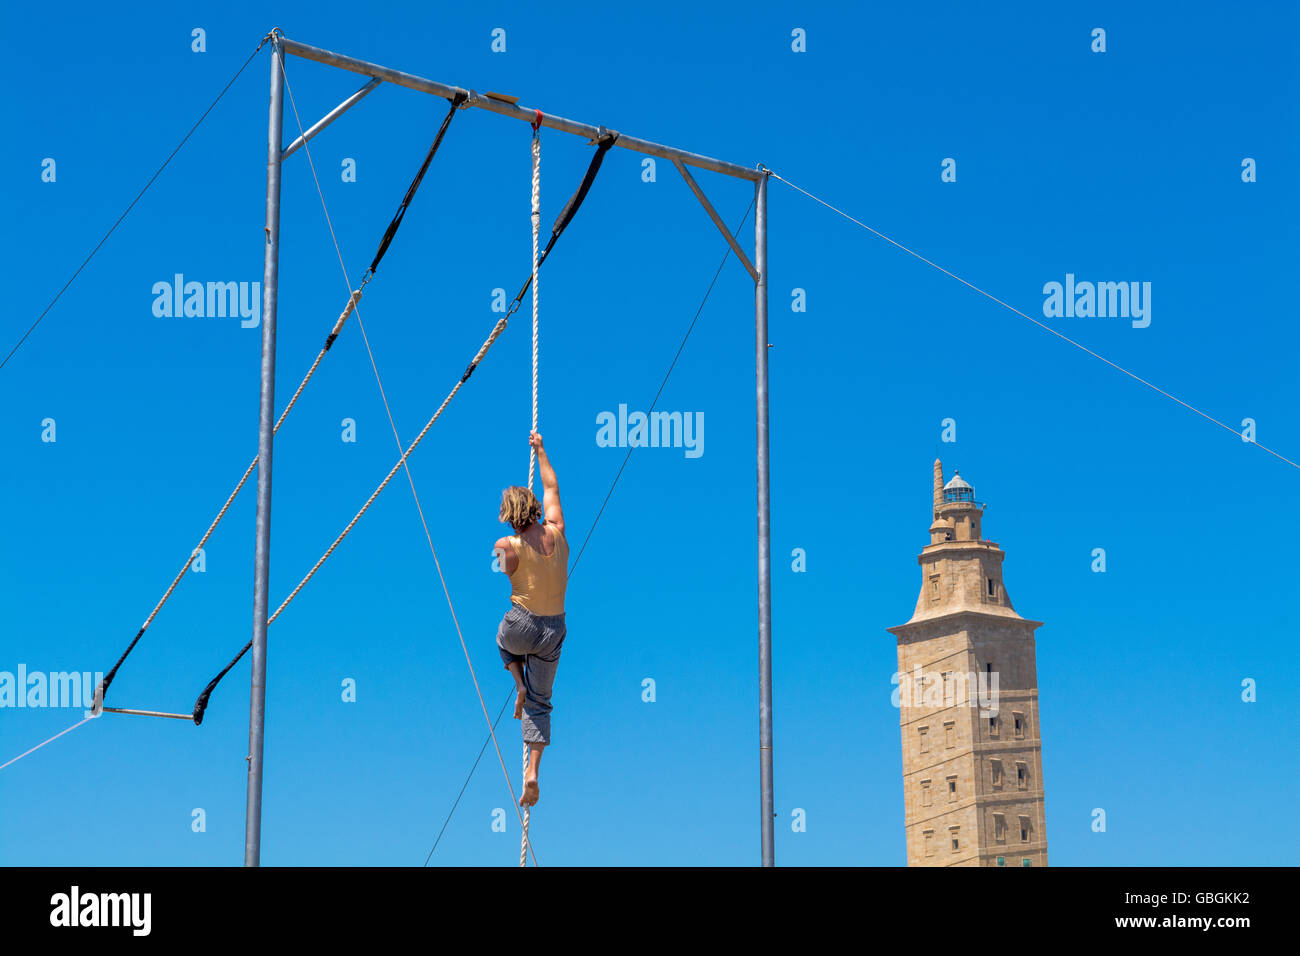 Low Angle View Of Gymnast Performing On Rope Against Clear Blue Sky - Stock Image